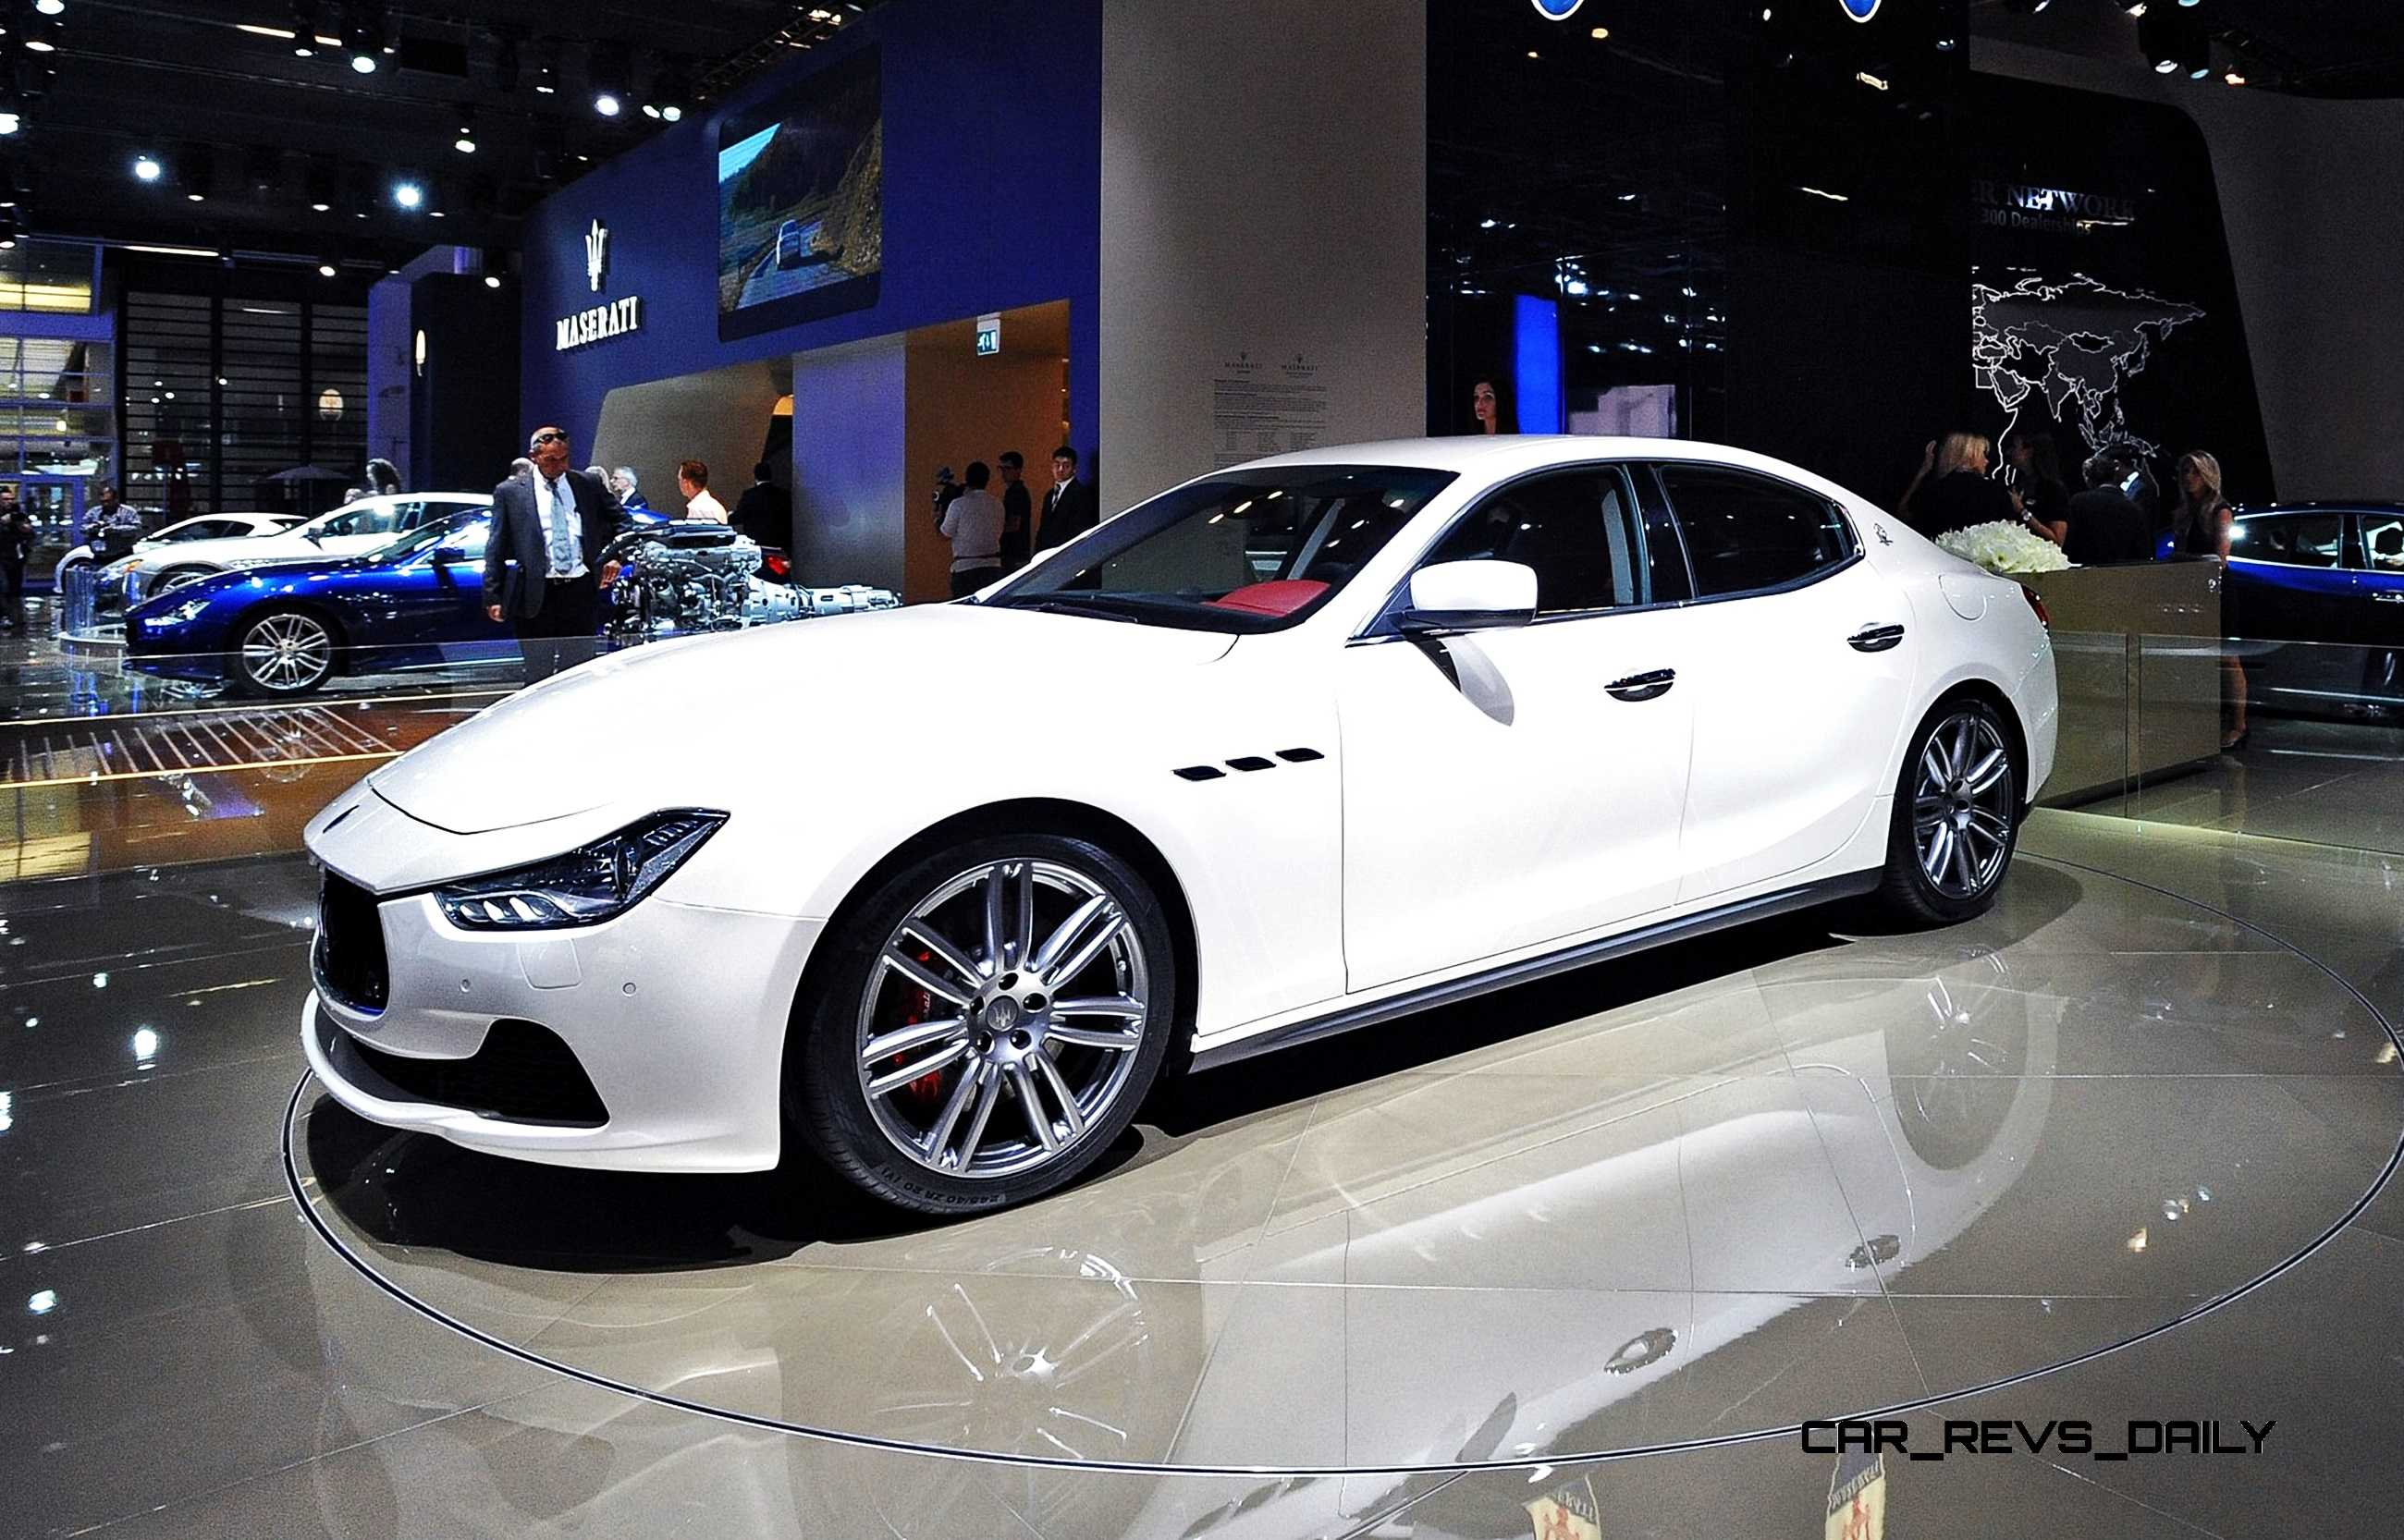 2015 maserati ghibli s q4 zegna edition in exclusive blue with silk lined cabin. Black Bedroom Furniture Sets. Home Design Ideas